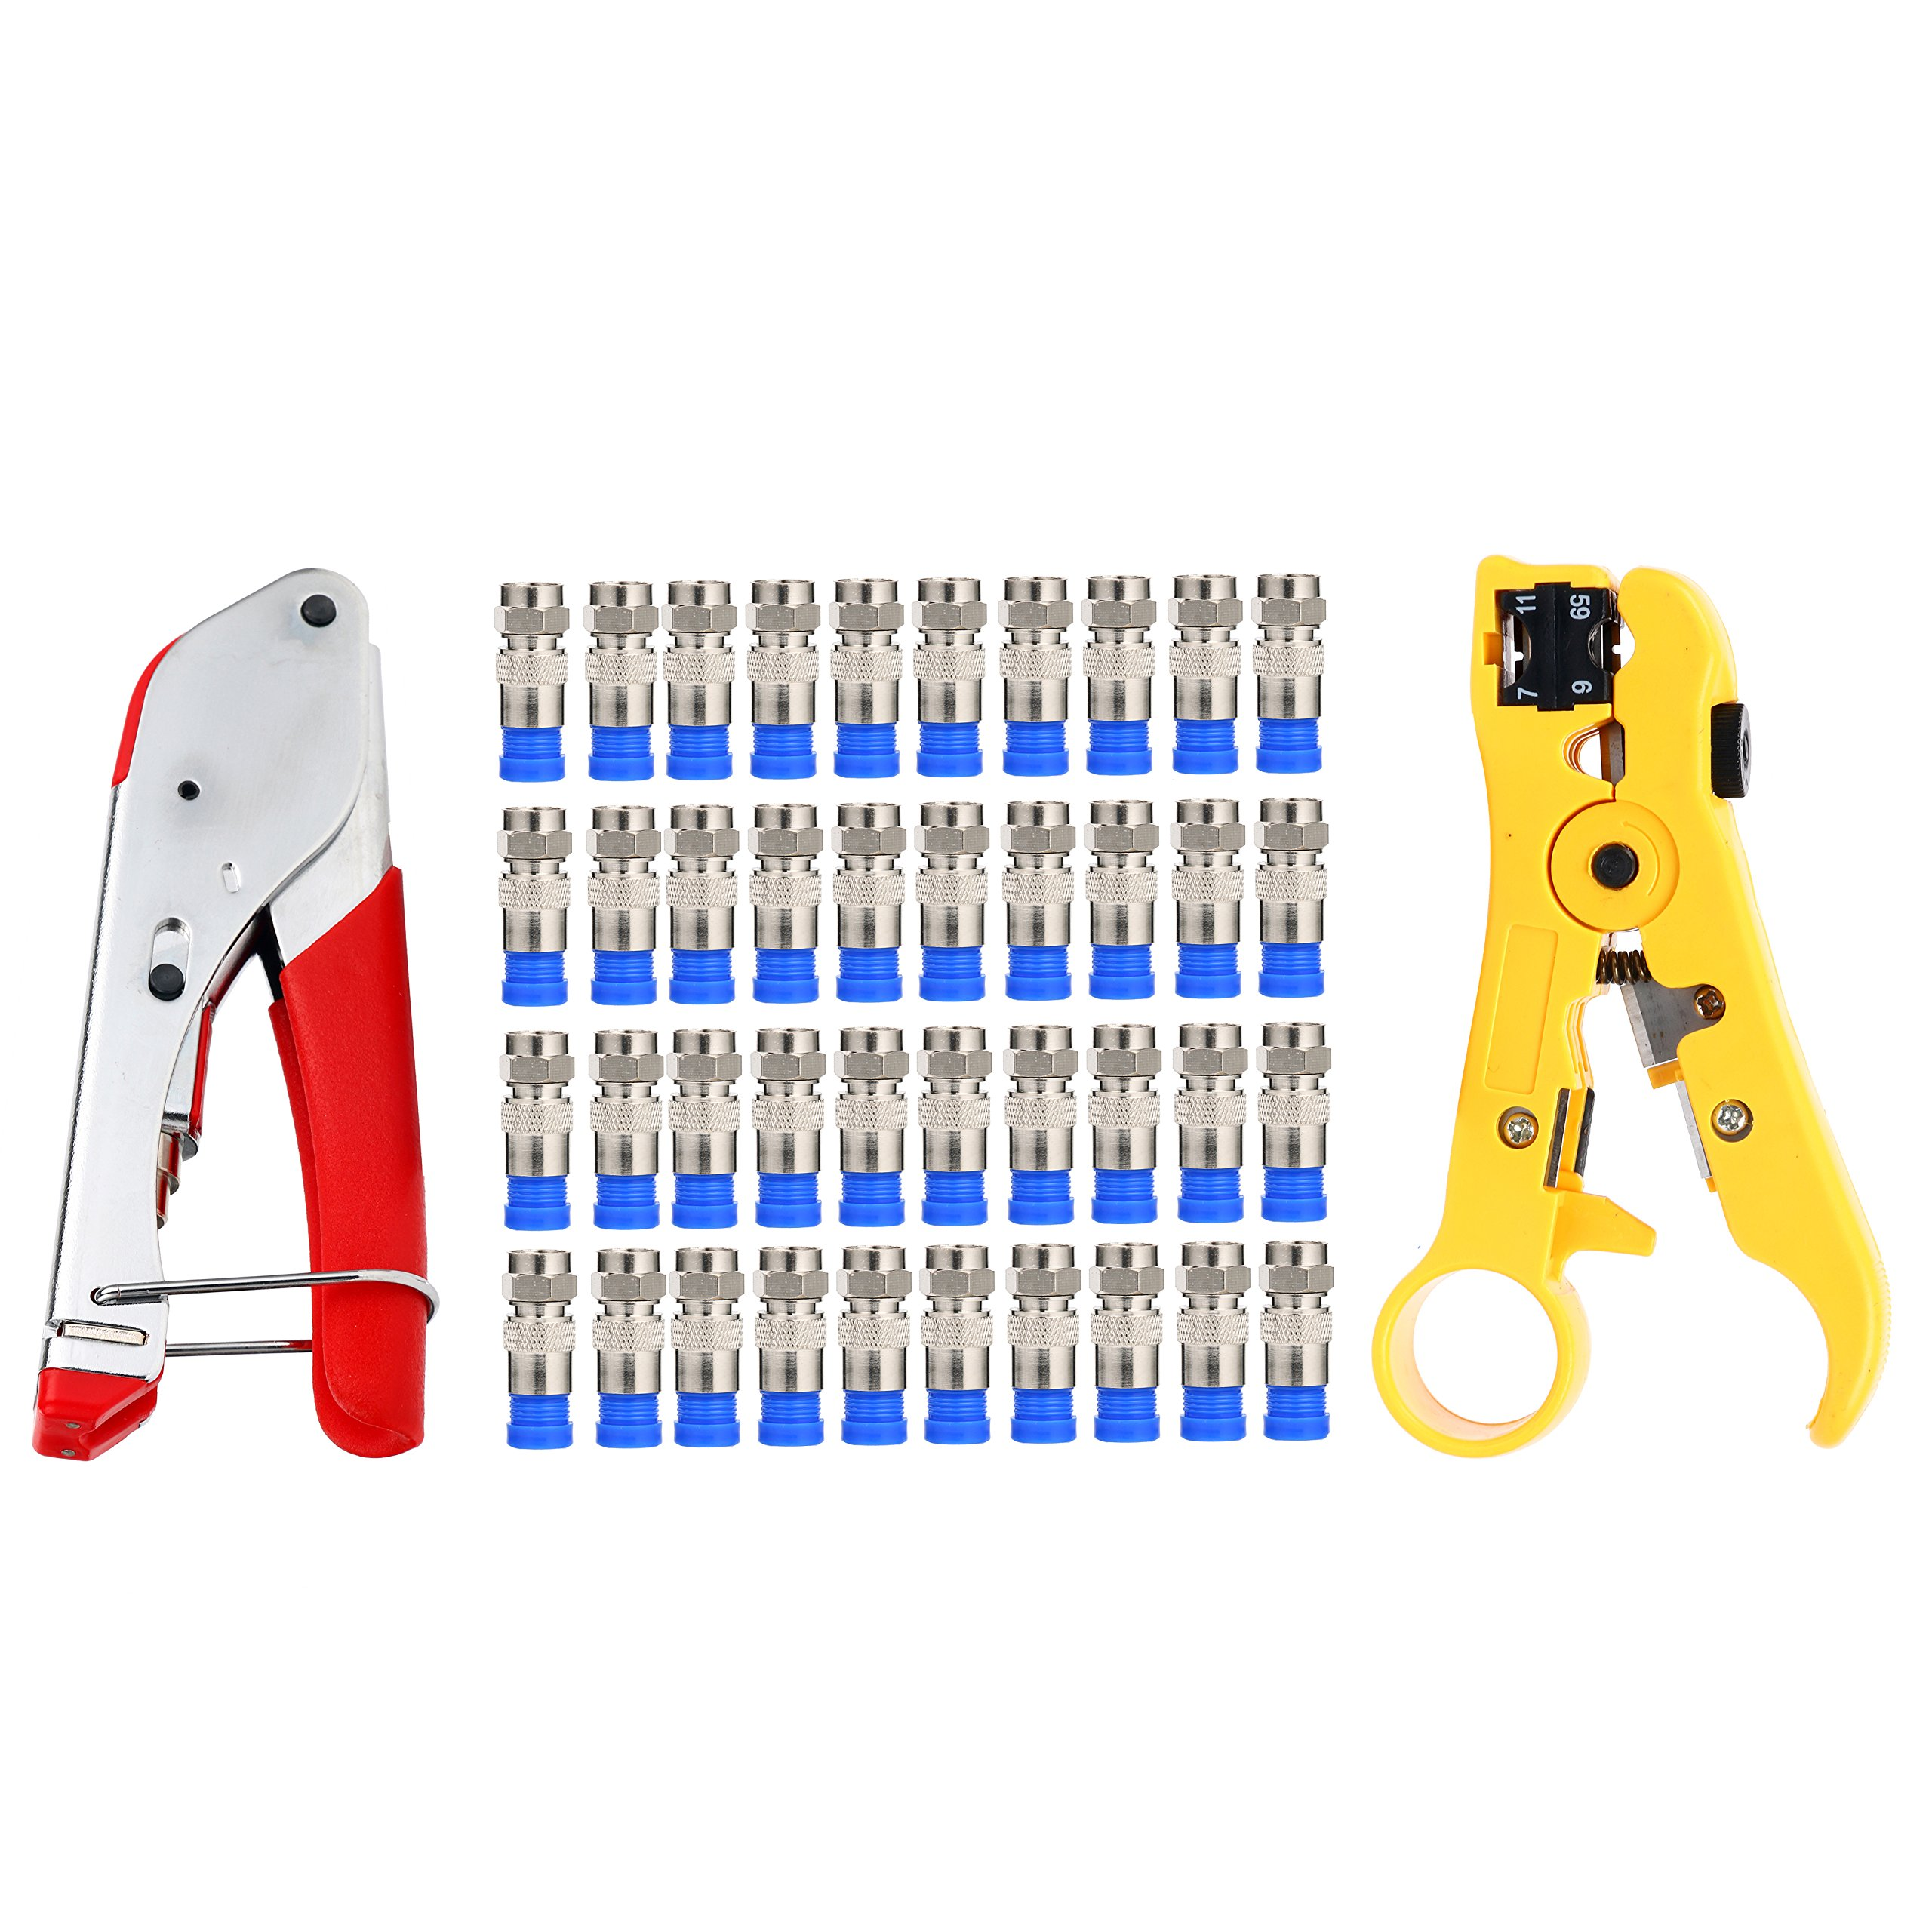 YaeTek Coaxial Coax Compression Connector and 40Pcs F Compression Connectors RG6 with Cable Wire Stripper Stripping Tool Compression Crimper Crimping tool RG6 RG59 RG11 by YaeTek (Image #2)